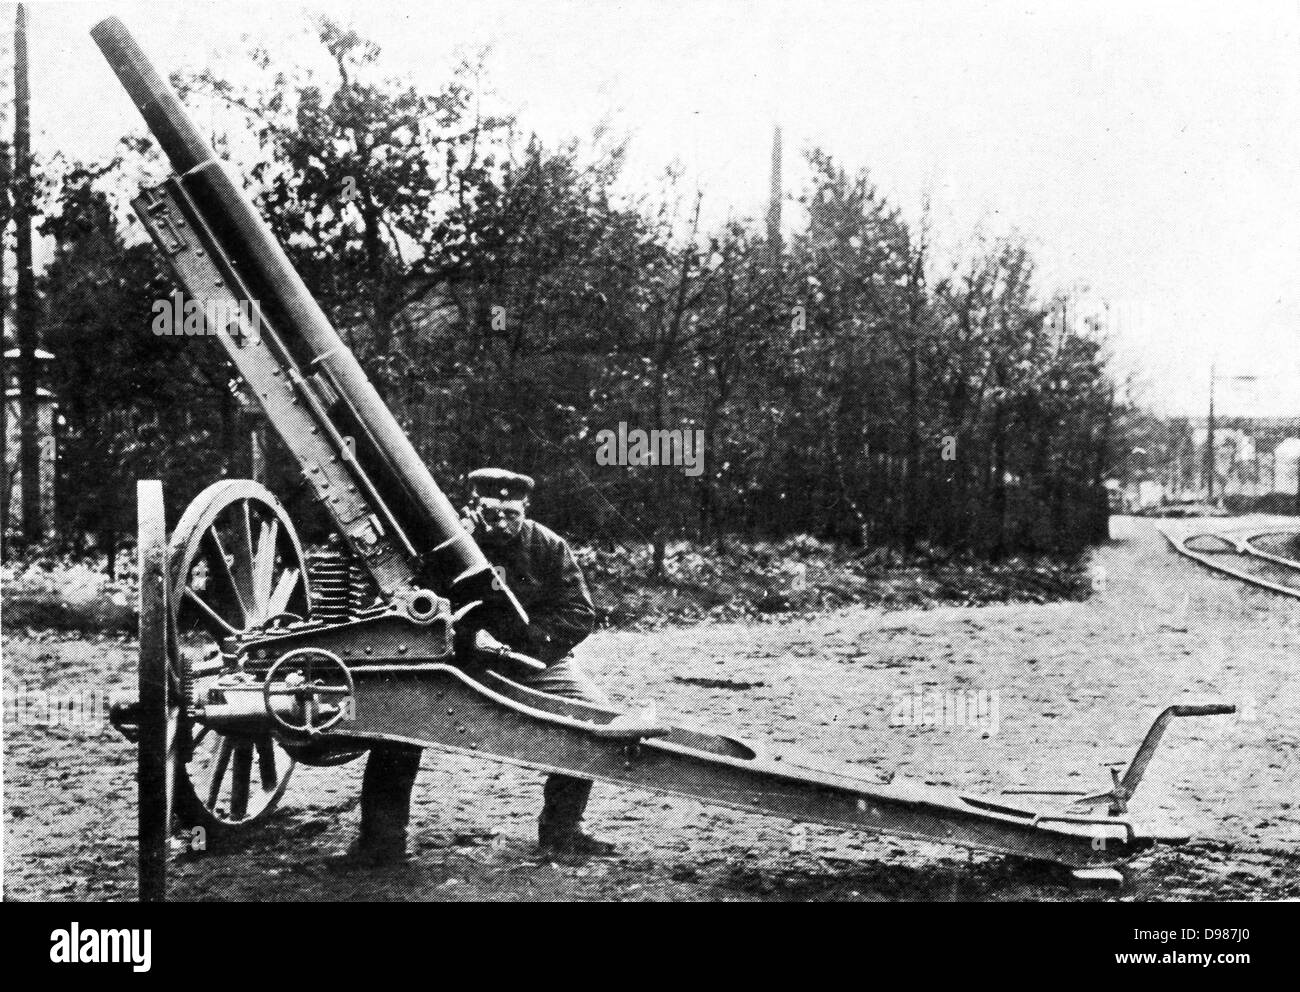 A German 21-centimeter siege mortar with caterpillar wheels. - Stock Image